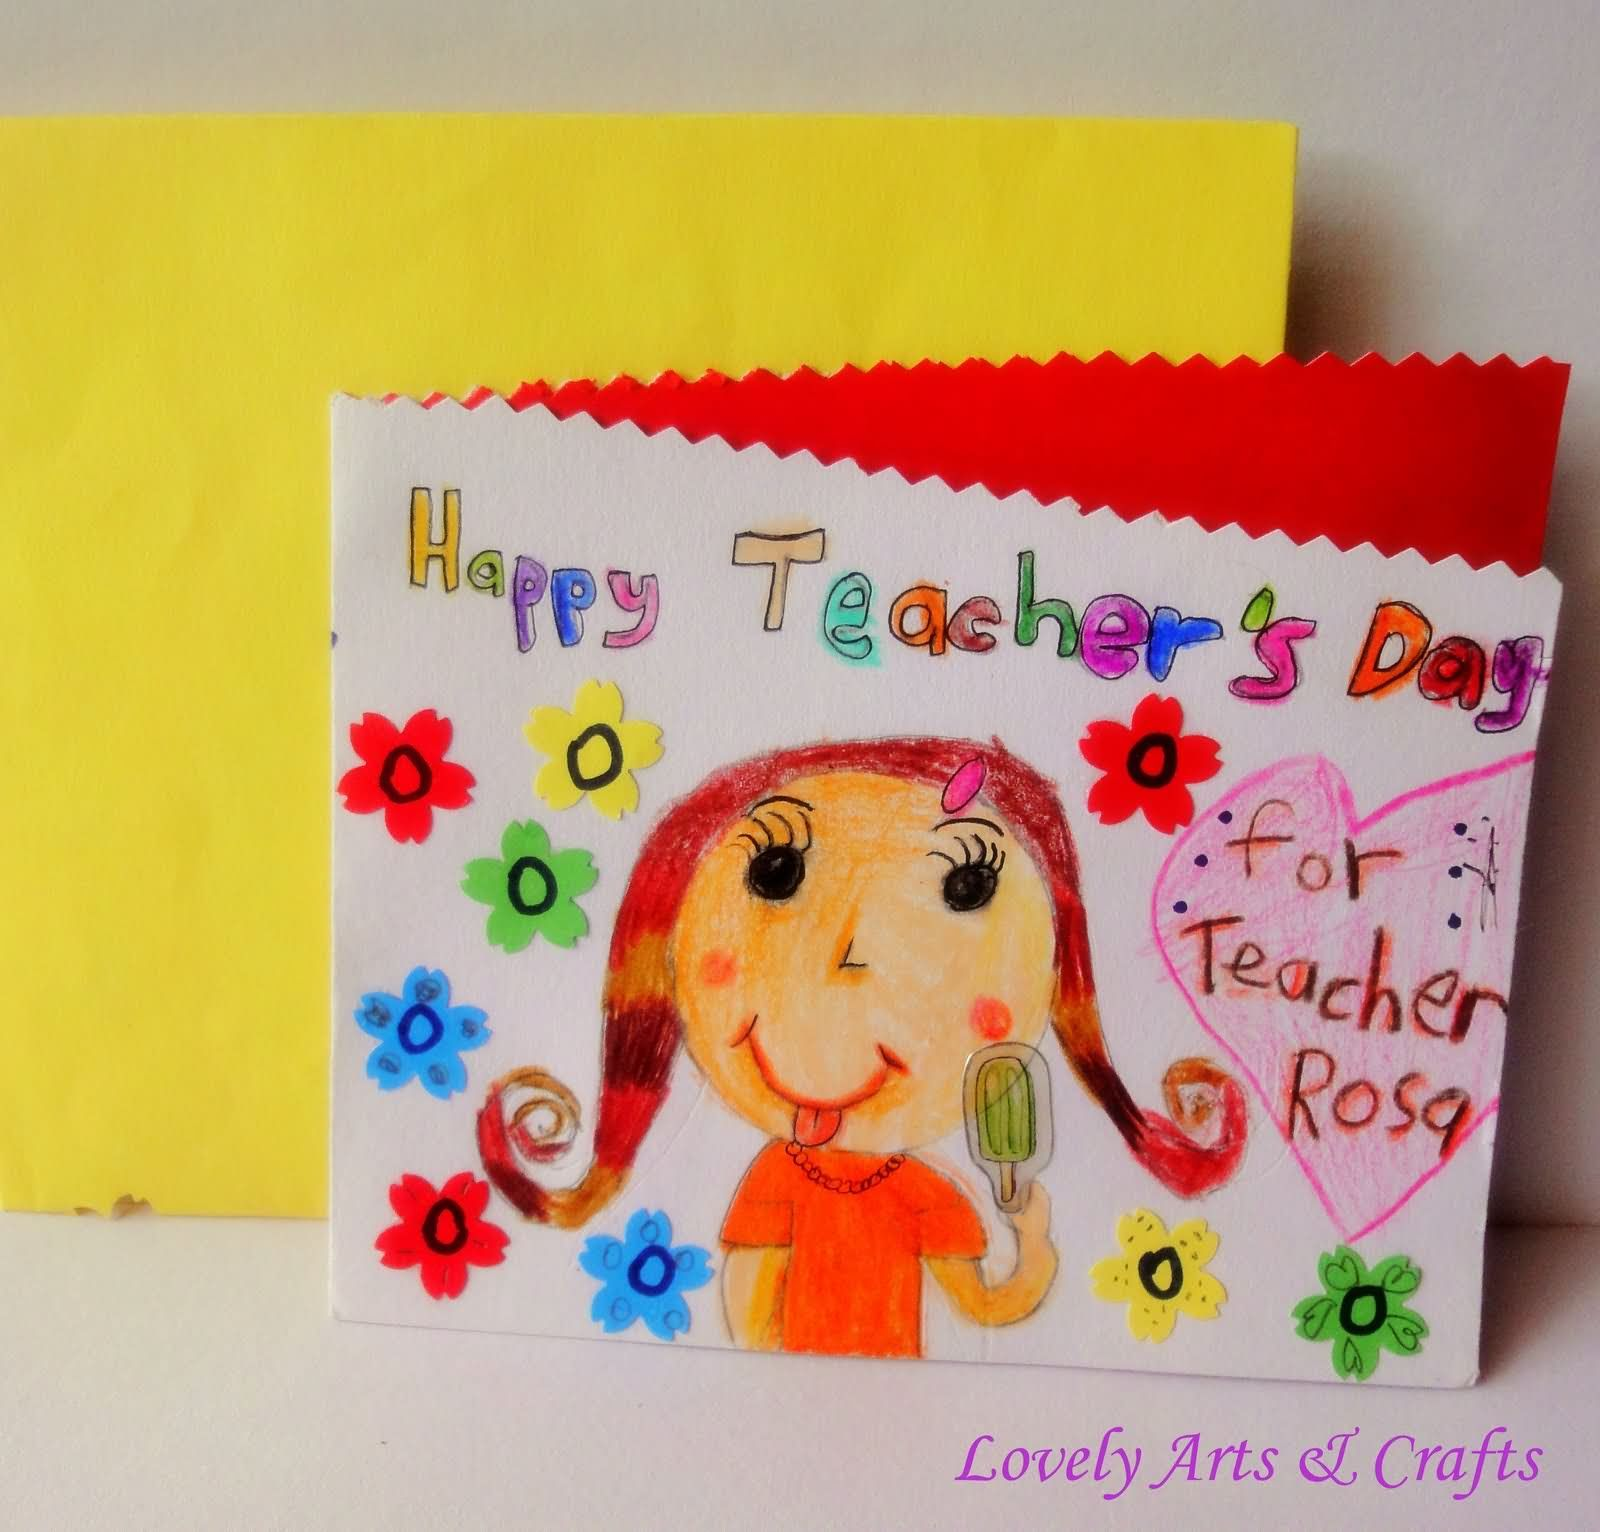 Happy teachers day hand made greeting card cards pinterest happy teachers day hand made greeting card kristyandbryce Choice Image